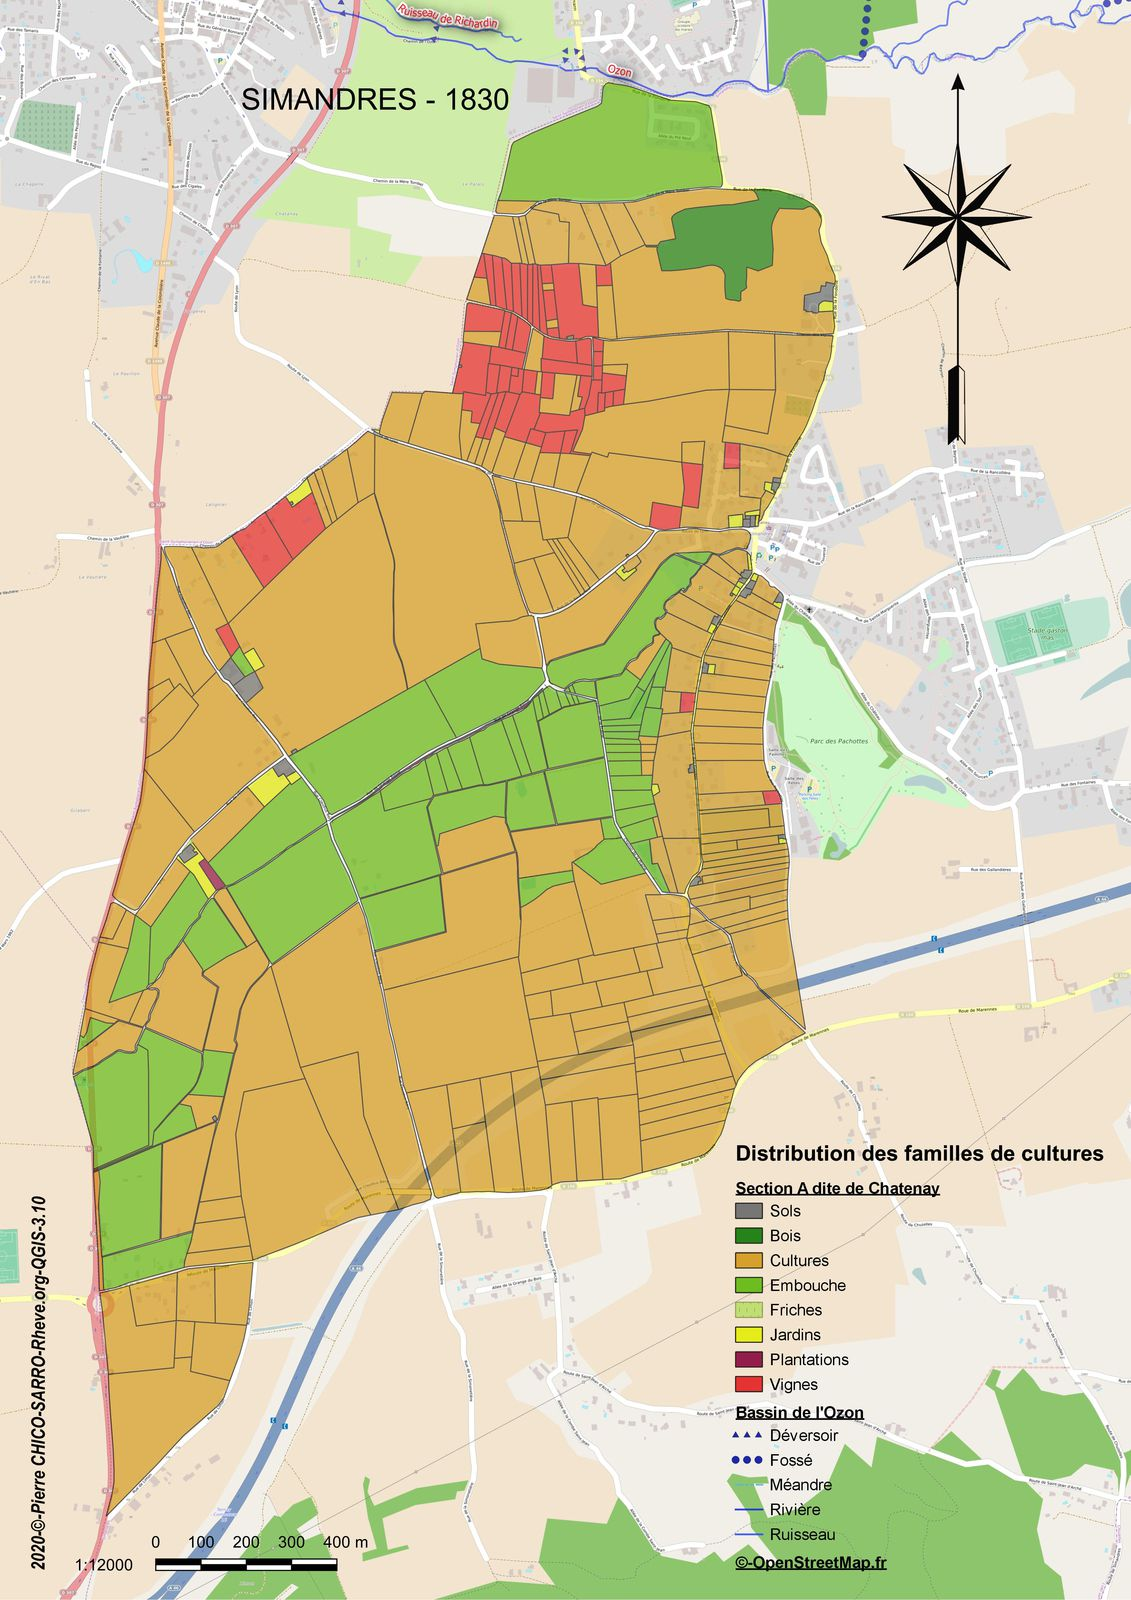 Distribution des familles de cultures dans la section A dite de Chatenay à Simandres en 1830